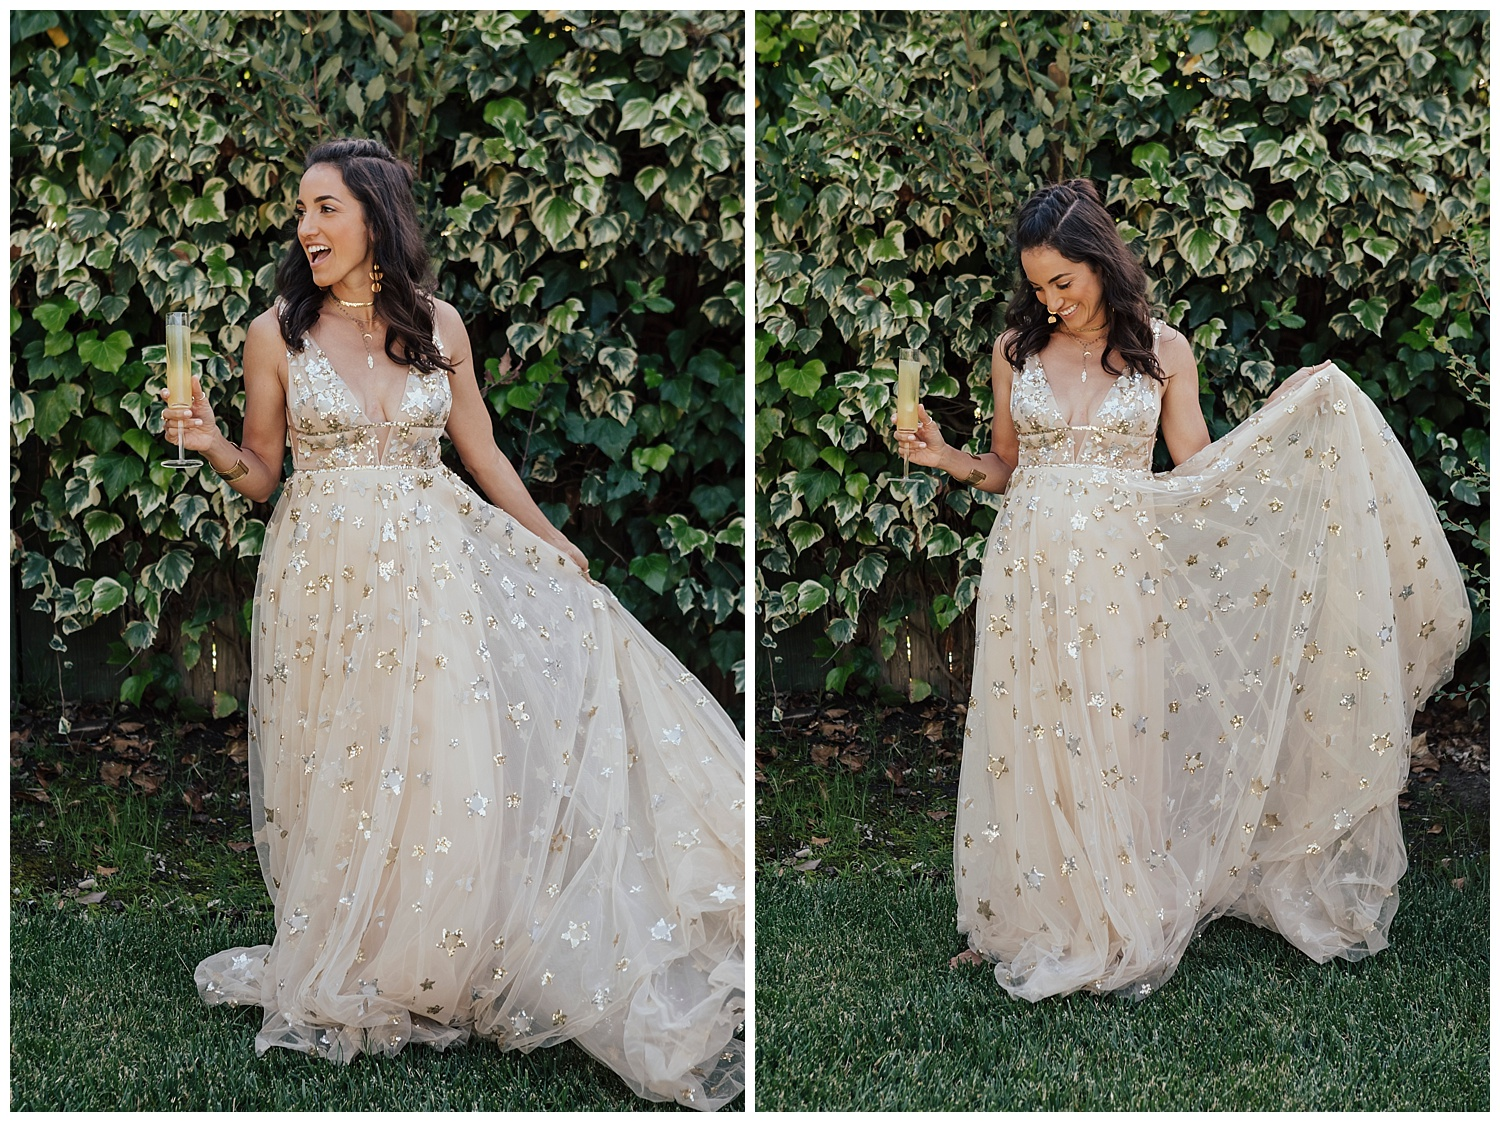 orion-gown-willowby-by-watters-epiphany-boutique.jpg